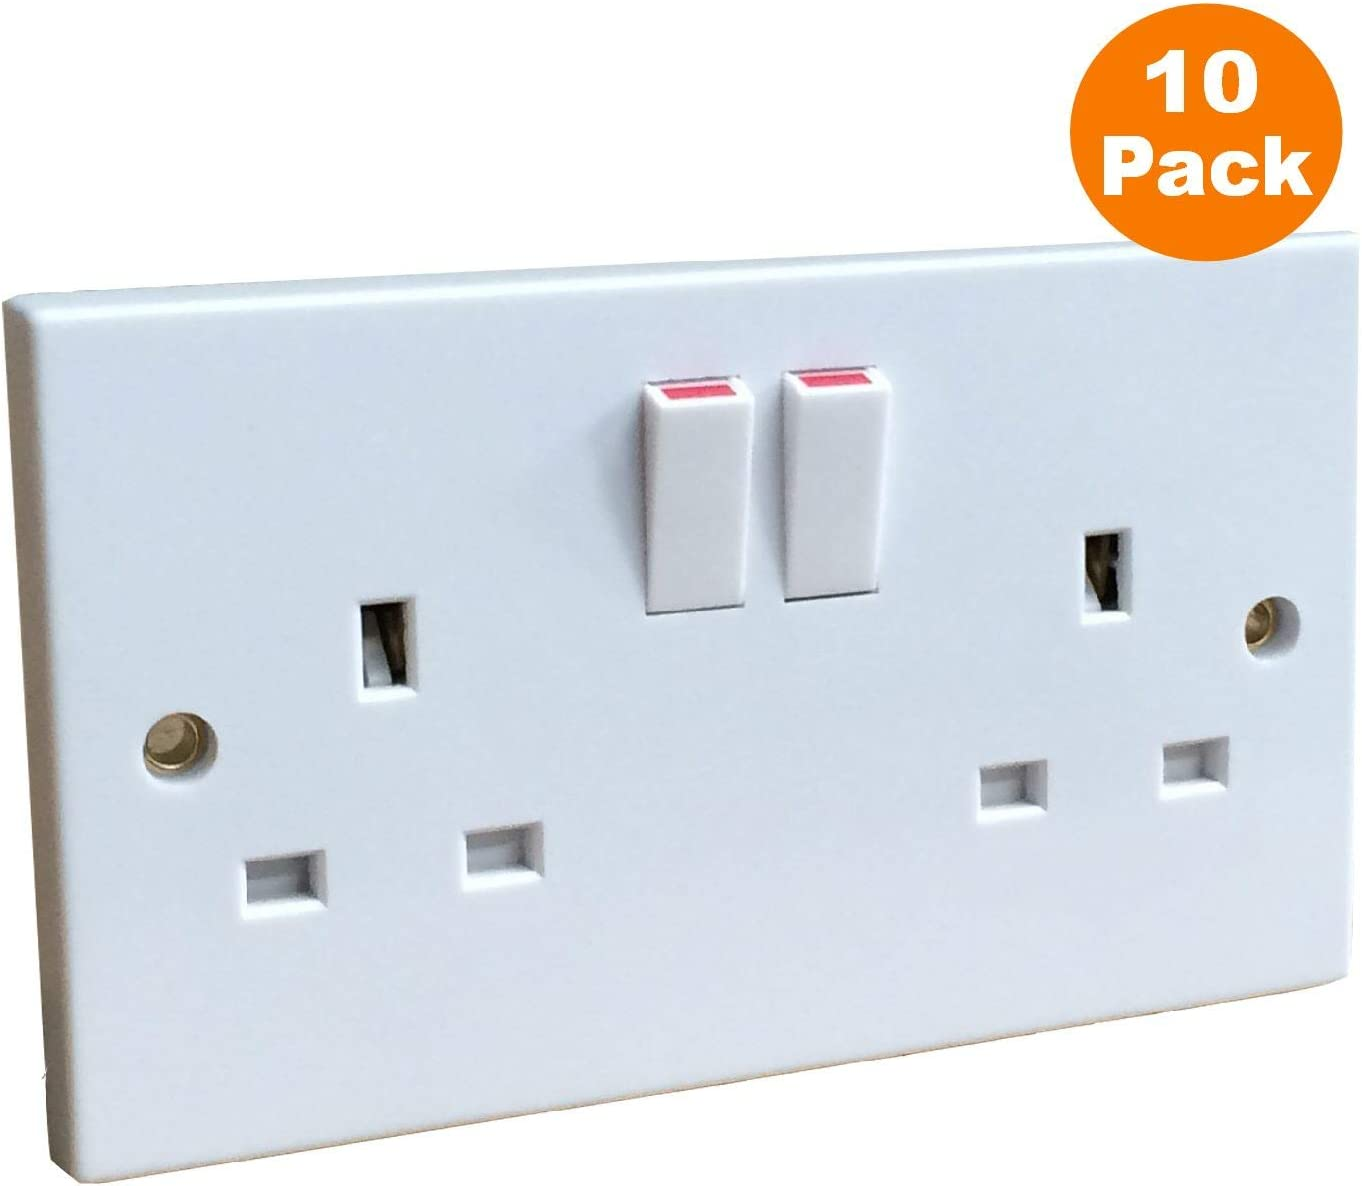 5 x Curved Edge 13A Switched Socket Twin Double Plug Socket 2 Gang Double Pole